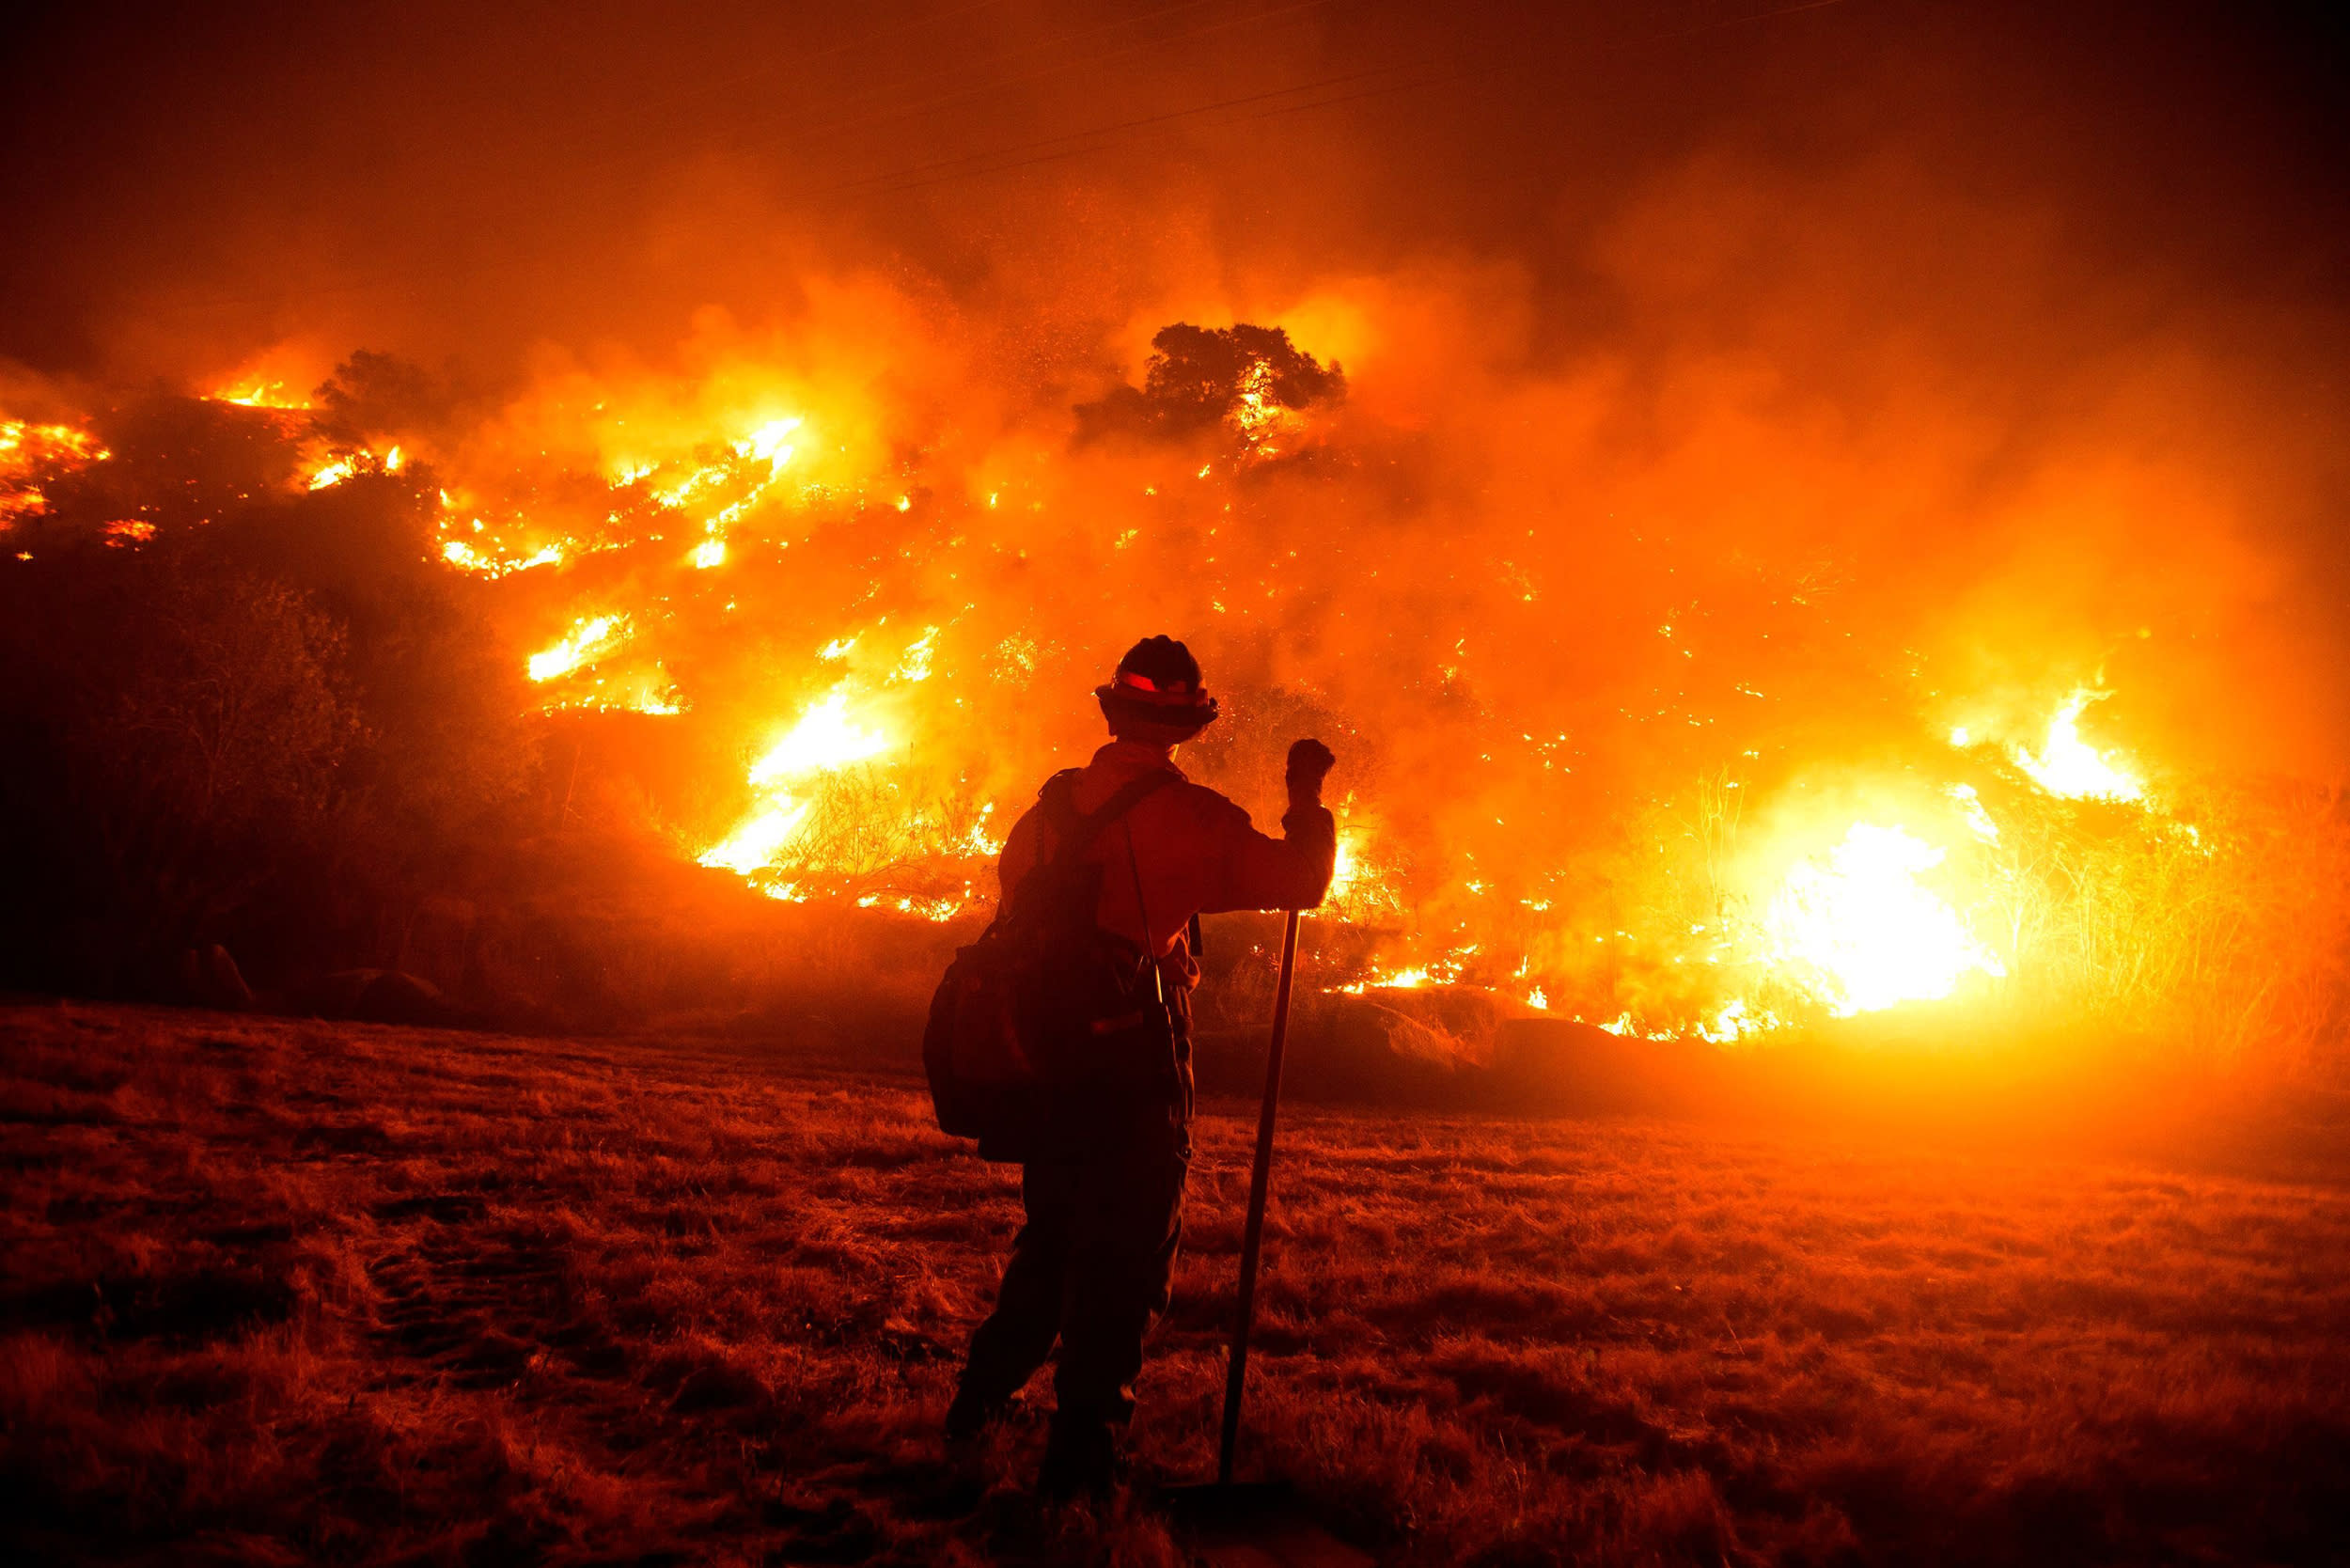 'A perfect storm': Why a California wildfire continues to elude firefighters